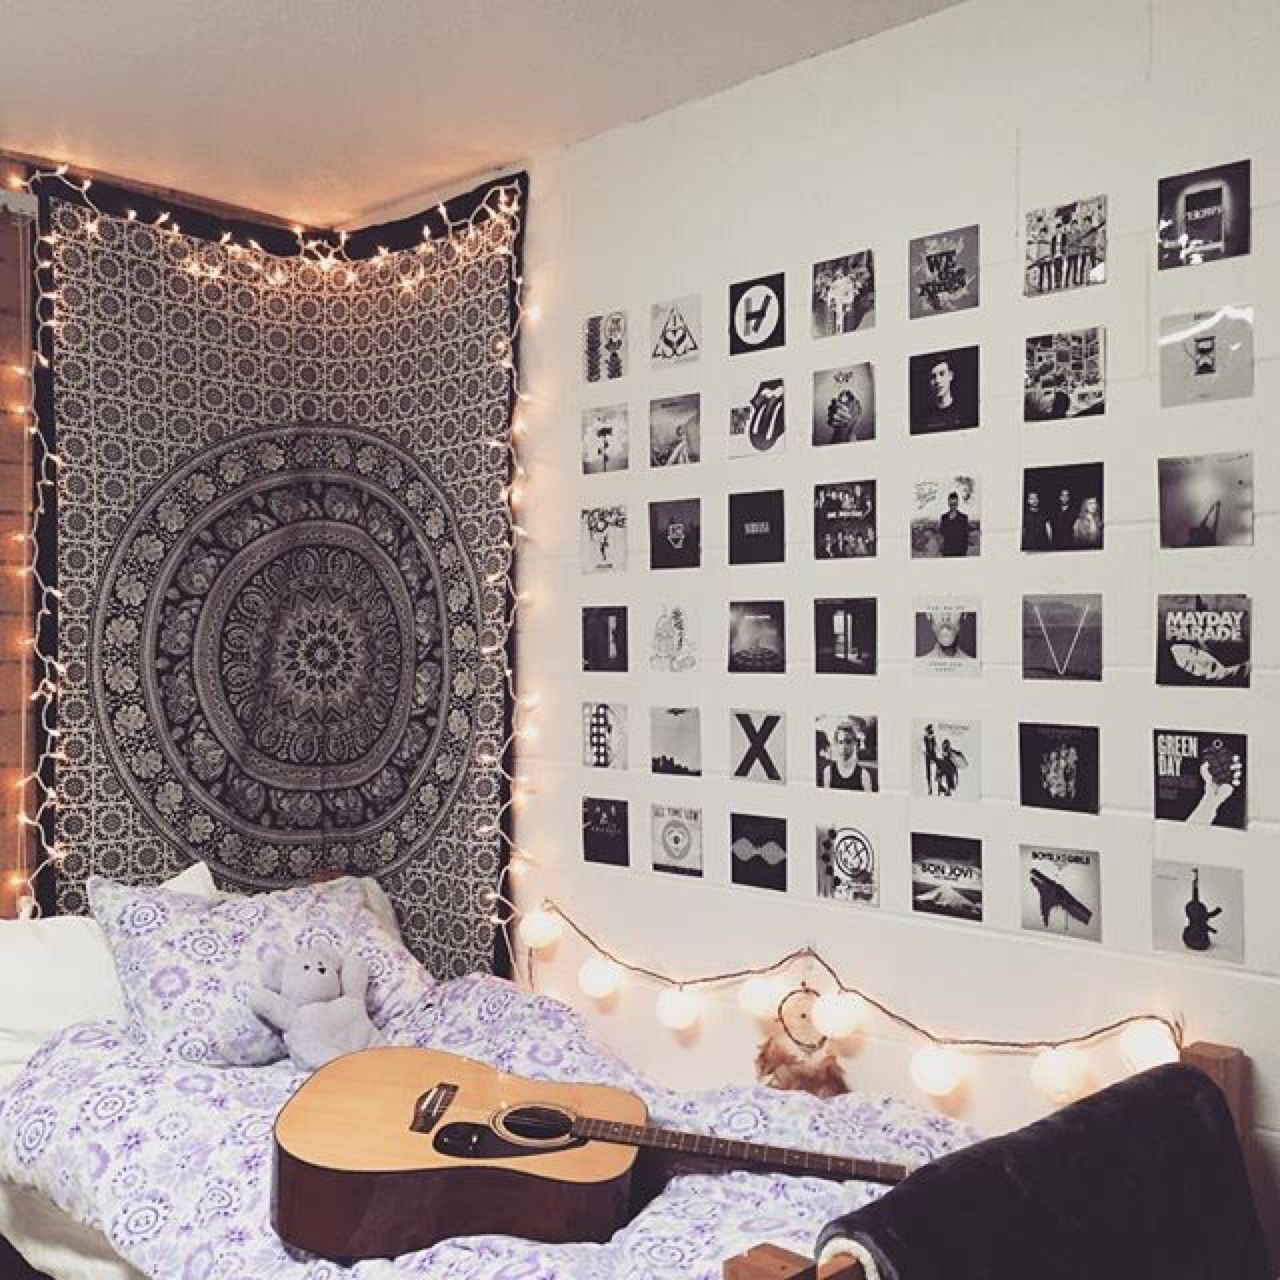 Indie room ideas tumblr - Source Myroomspo Tapestry Bedroom Tumblr Bedroom Decoration Room Decor Diy Room Inspiration Poster Lights Fairy Lights